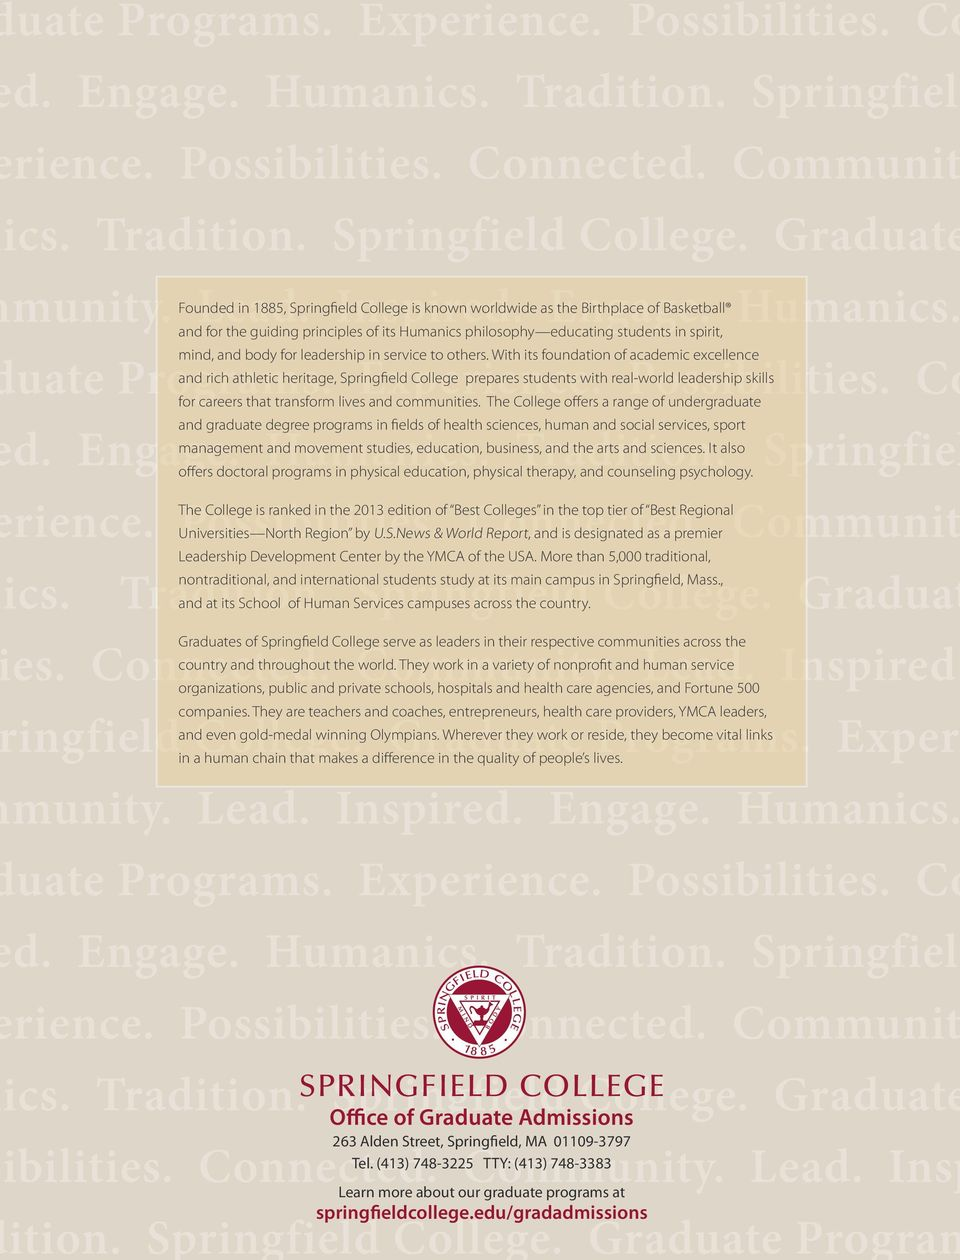 With its foundation of academic excellence and rich athletic heritage, Springfield College prepares students with real-world leadership skills for careers that transform lives and communities.